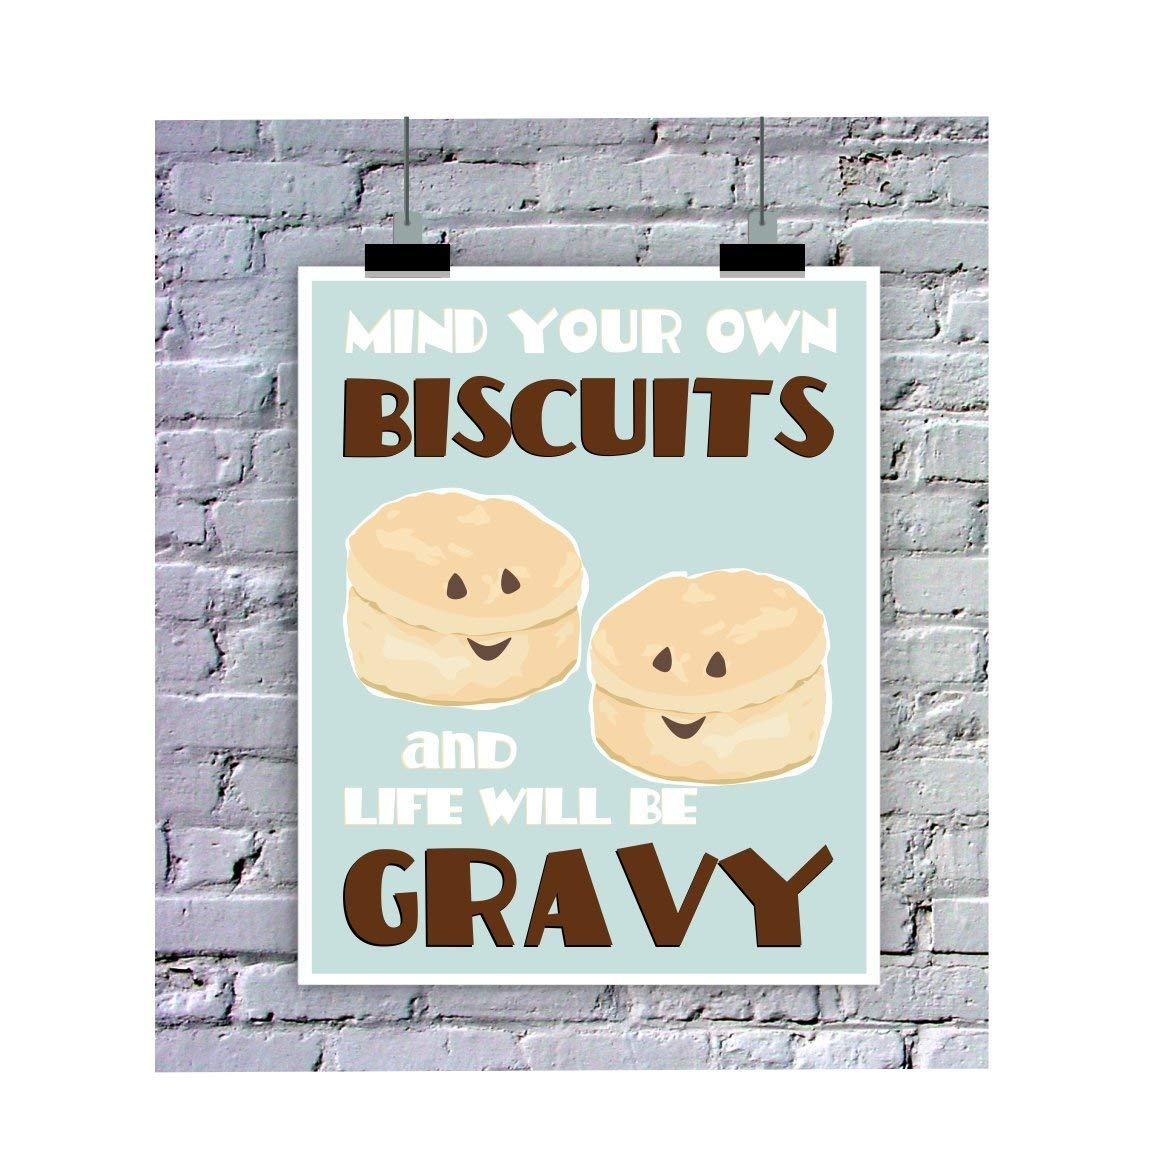 Mind Your Own Biscuits Funny Pun Poster 11 x 14